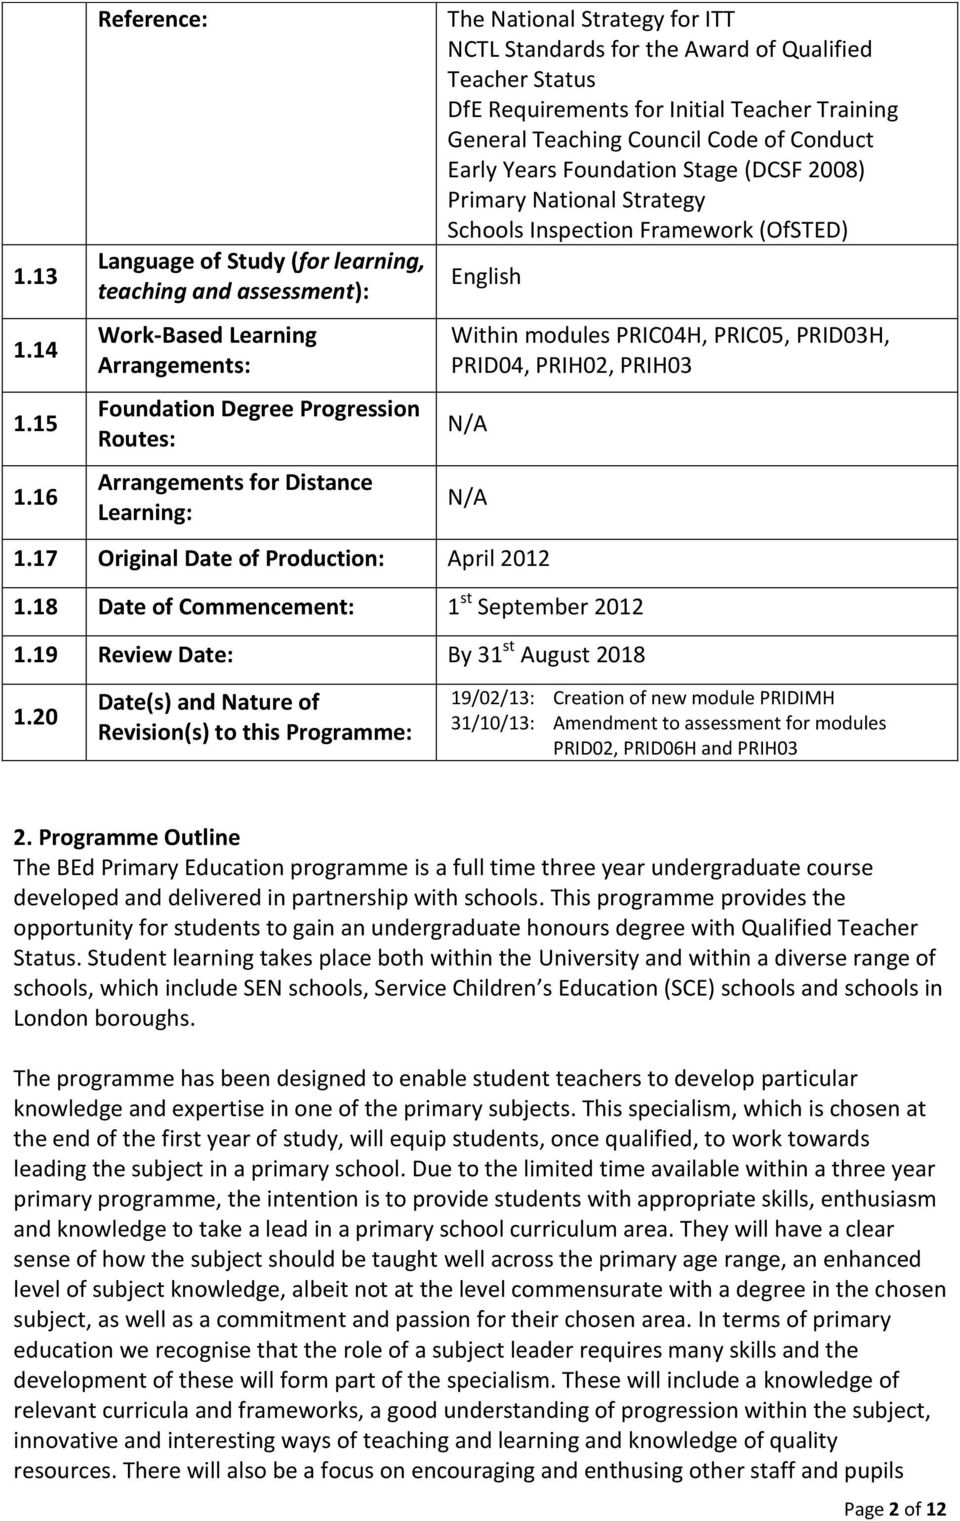 Strategy for ITT NCTL Standards for the Award of Qualified Teacher Status DfE Requirements for Initial Teacher Training General Teaching Council Code of Conduct Early Years Foundation Stage (DCSF